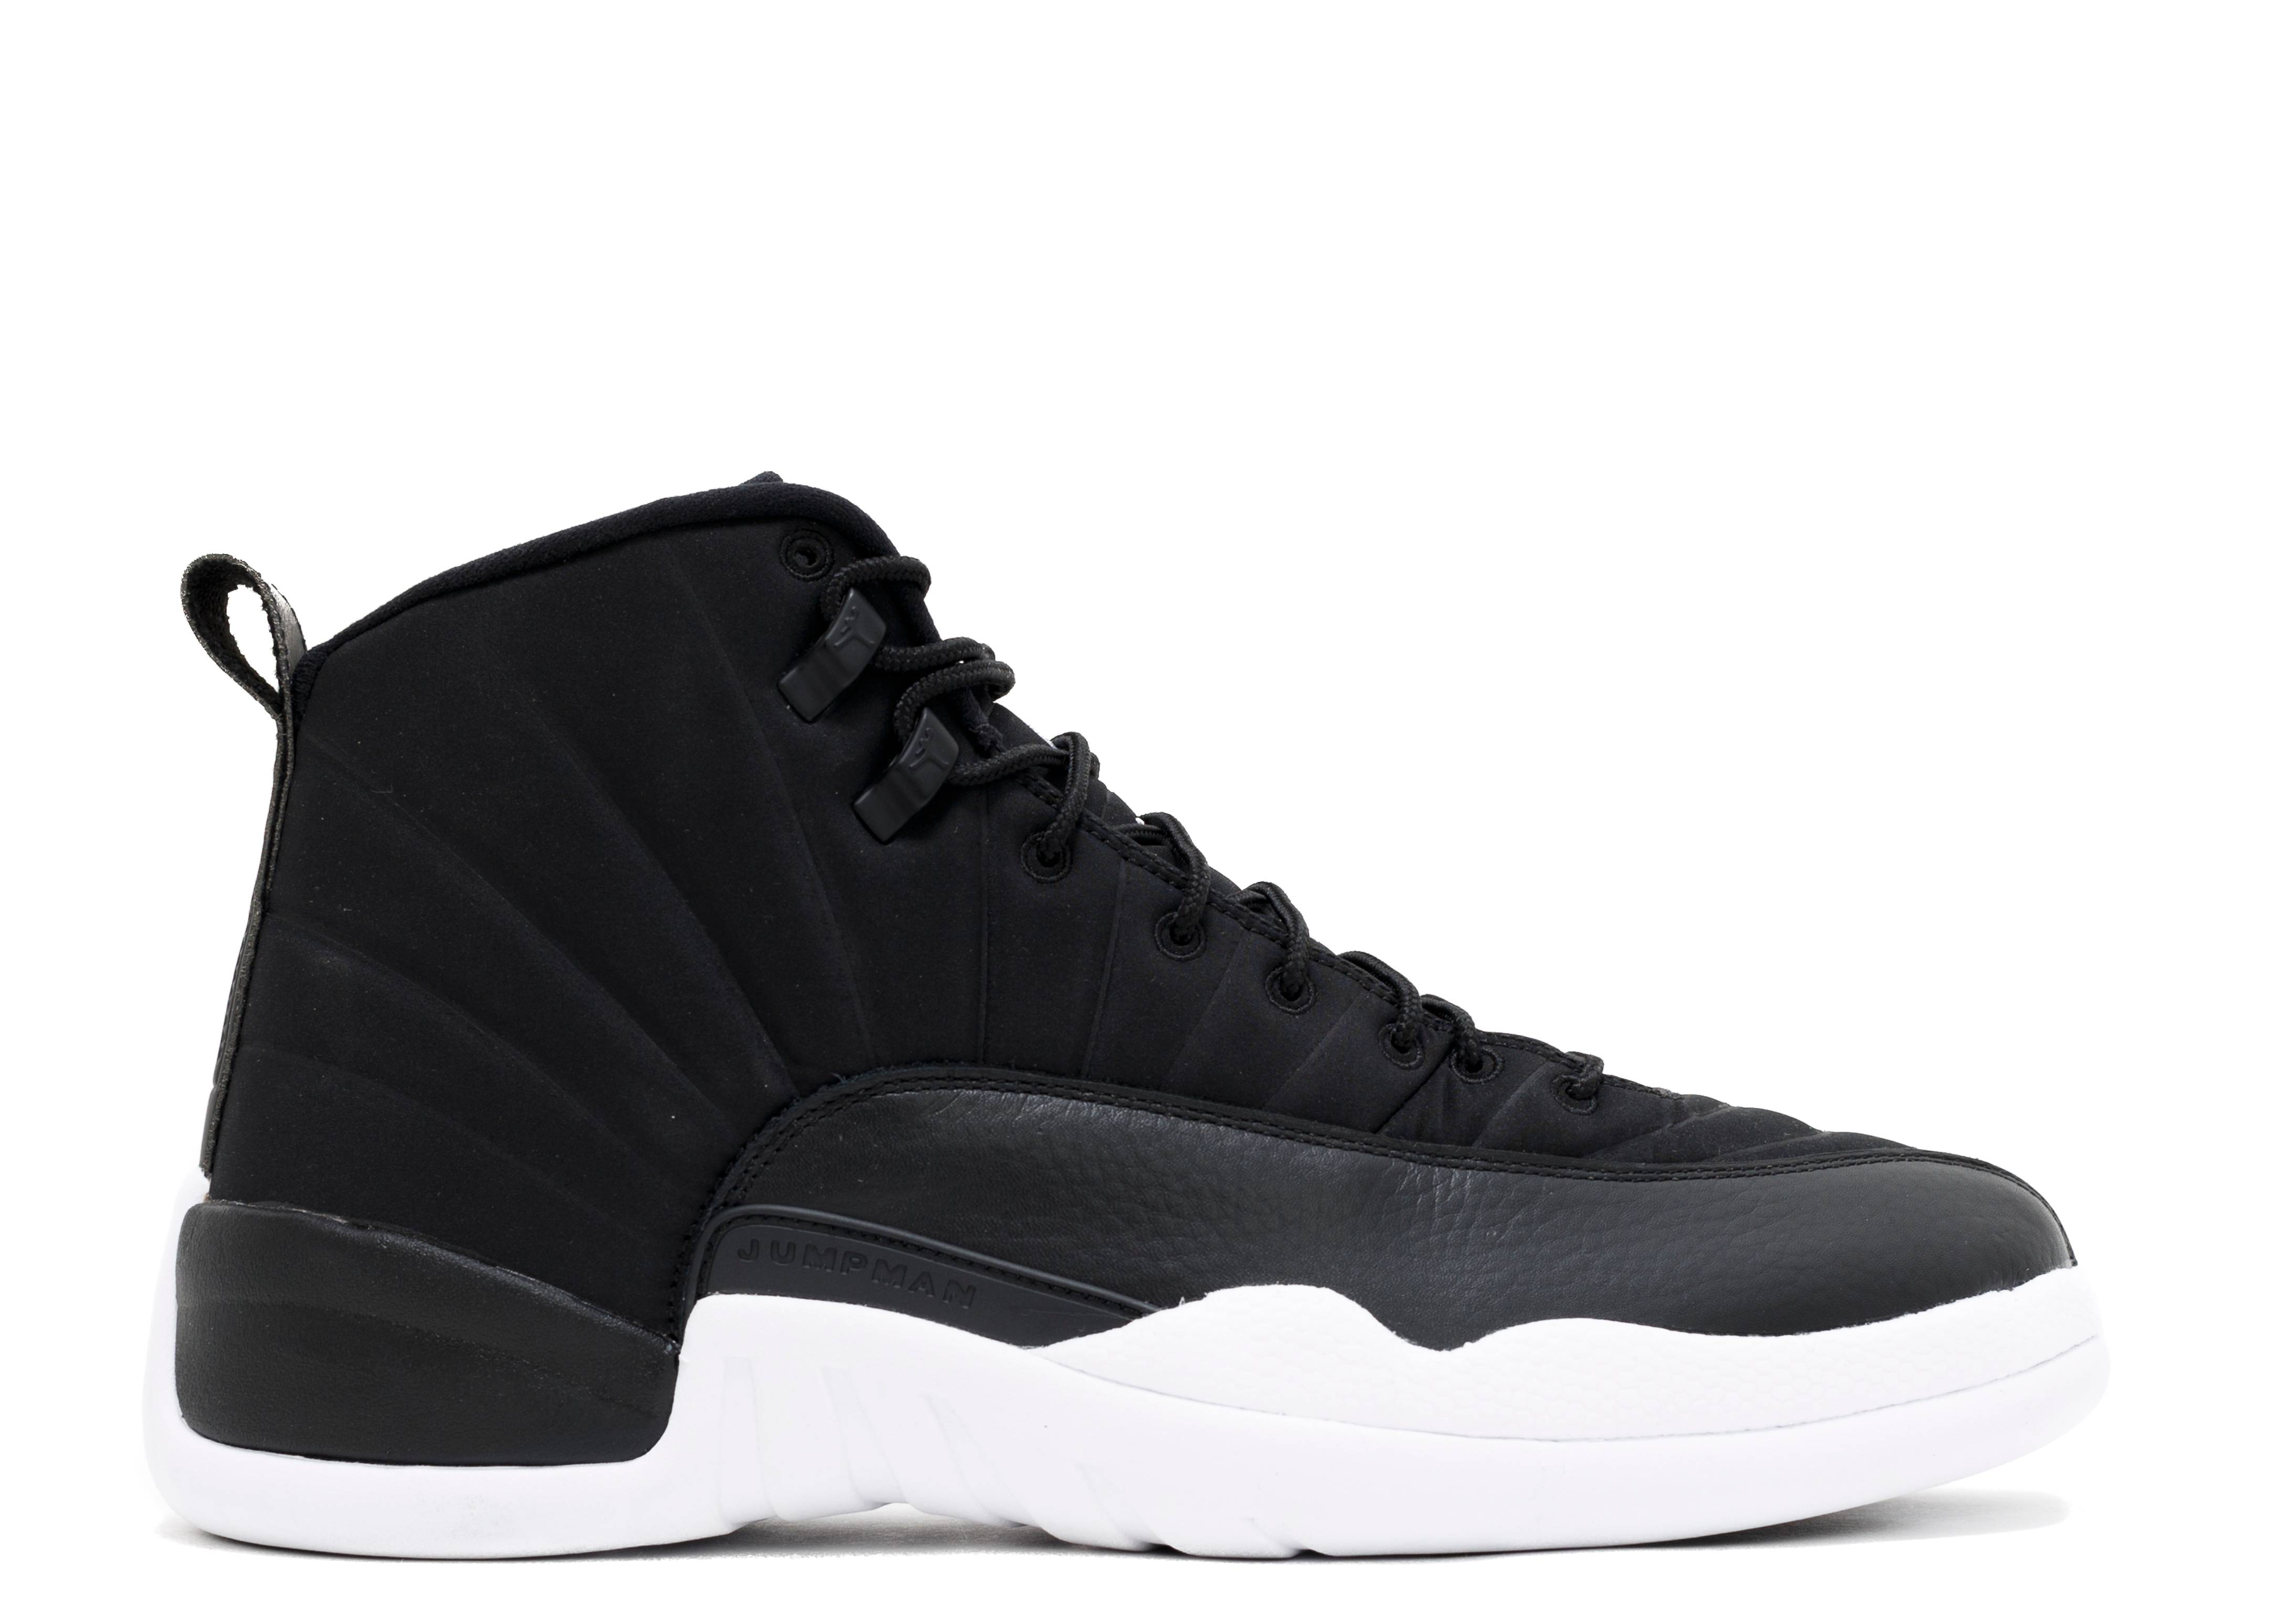 0d585bc5f47f2d Air Jordan 12 Retro